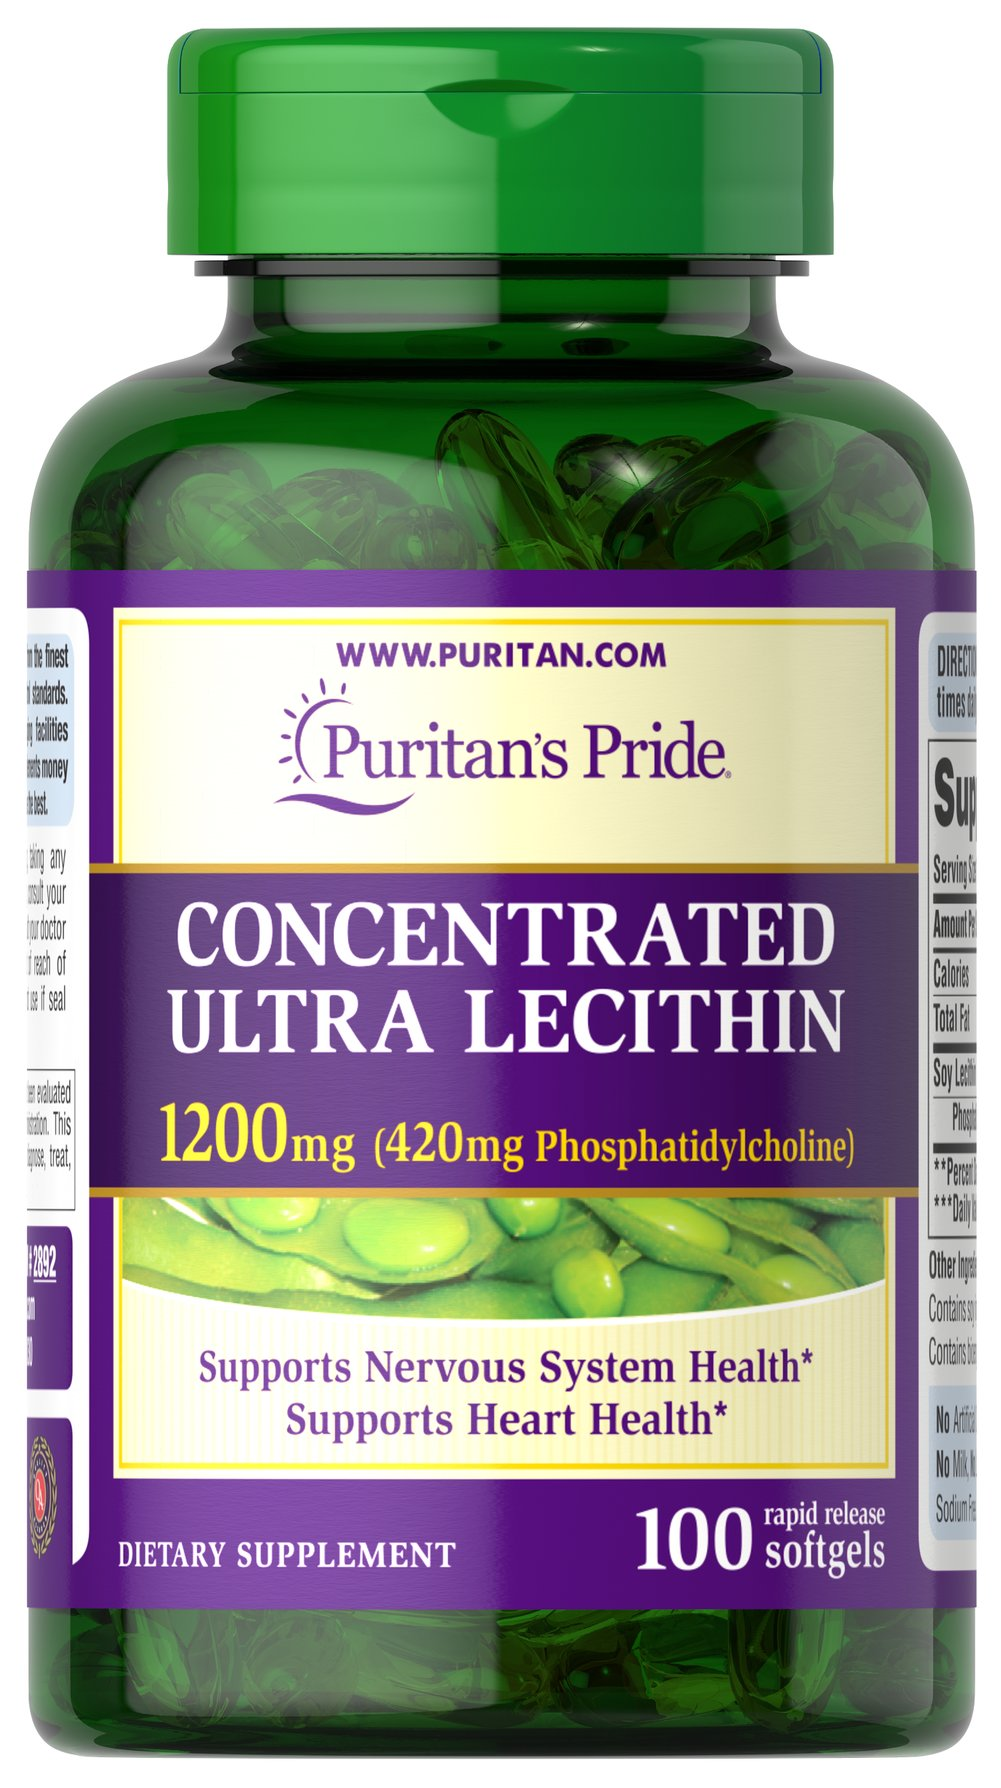 Concentrated Ultra Lecithin 1200 mg <p>Promotes healthy brain function**</p><p>Assists with cardiovascular health**</p><p>Contributes to a healthy nervous system**</p><p>Our highest potency Lecithin product to date++</p><p>One softgel provides you with a whopping 420 mg of naturally sourced Phosphatidylcholine, a vital part of the B Vitamin Complex.**</p> 100 Softgels 1200 mg $11.98